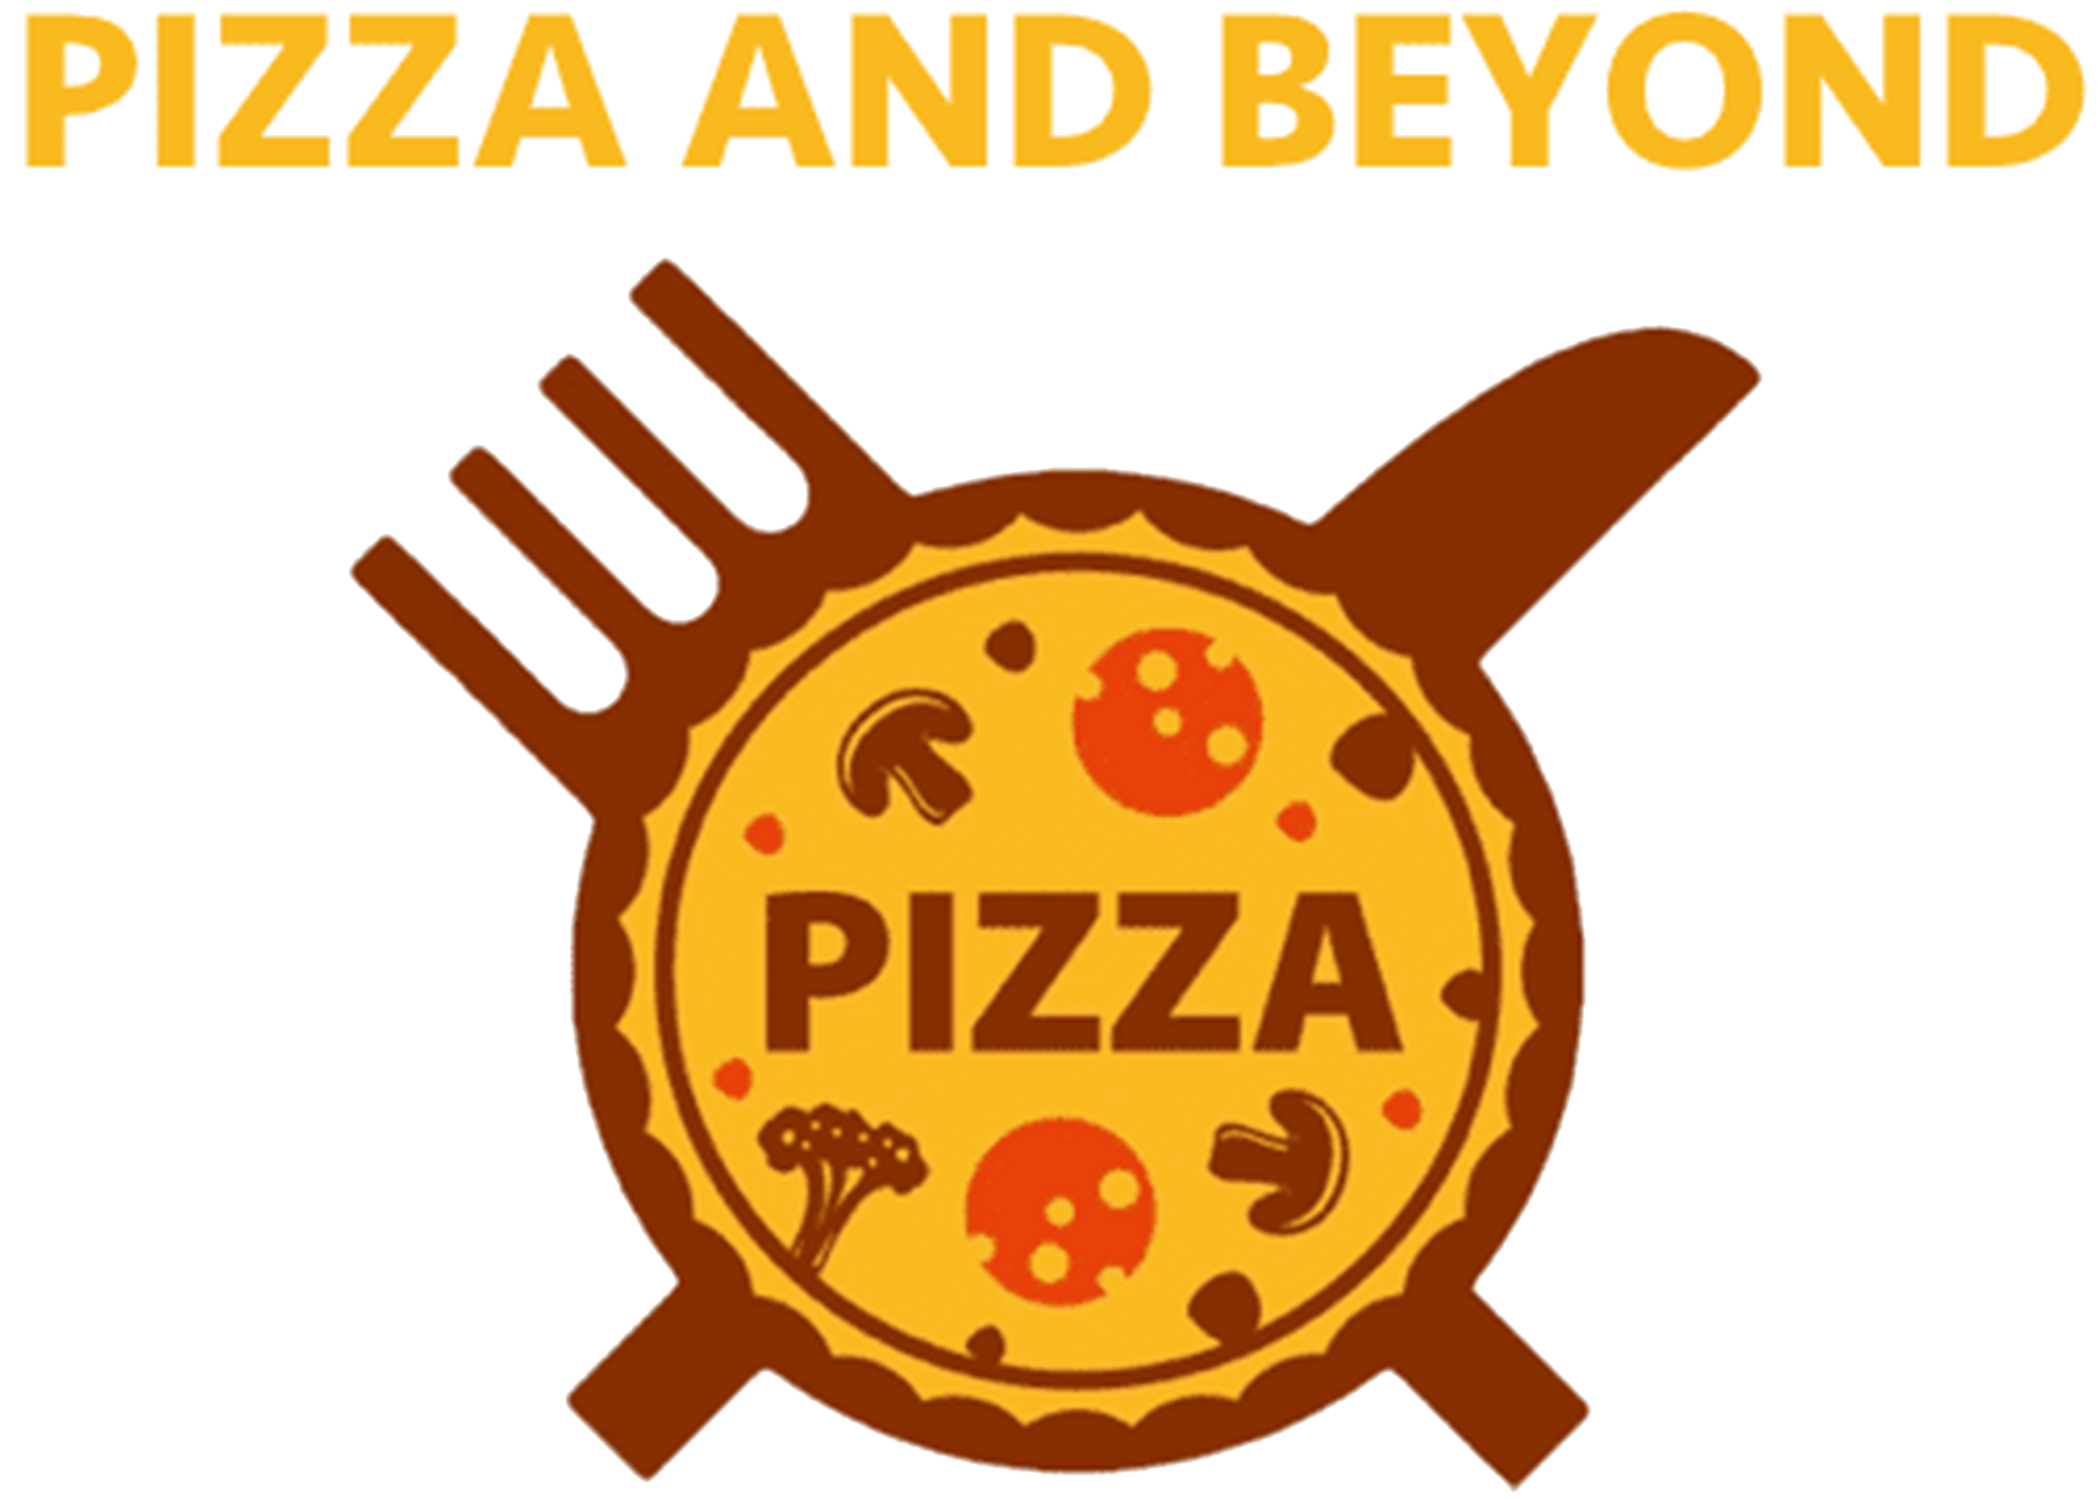 Pizza and Beyond